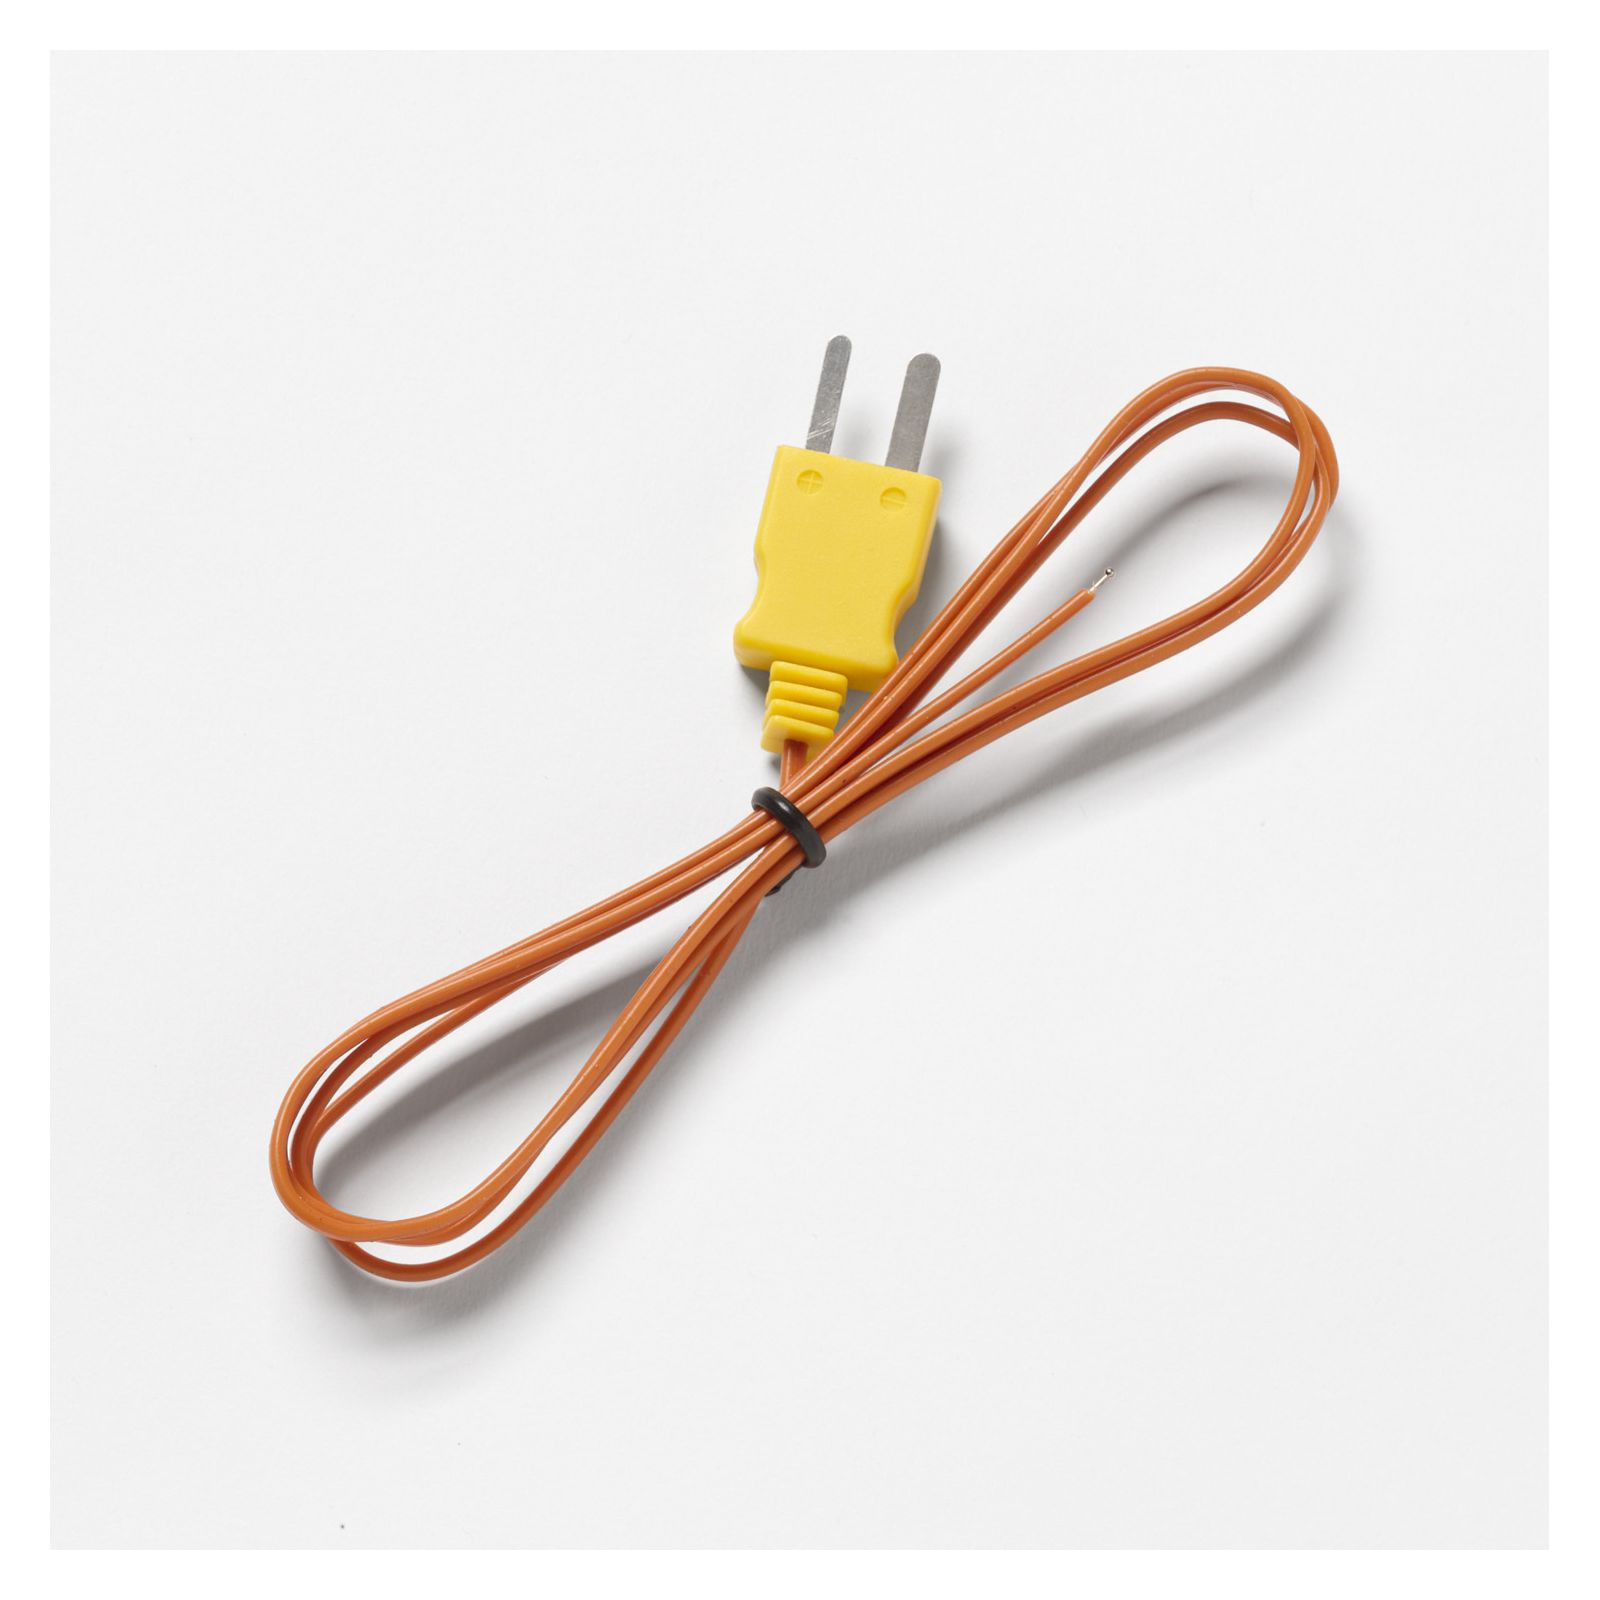 Fluke 750422 -  Bead Probe, Type-K Thermocouple